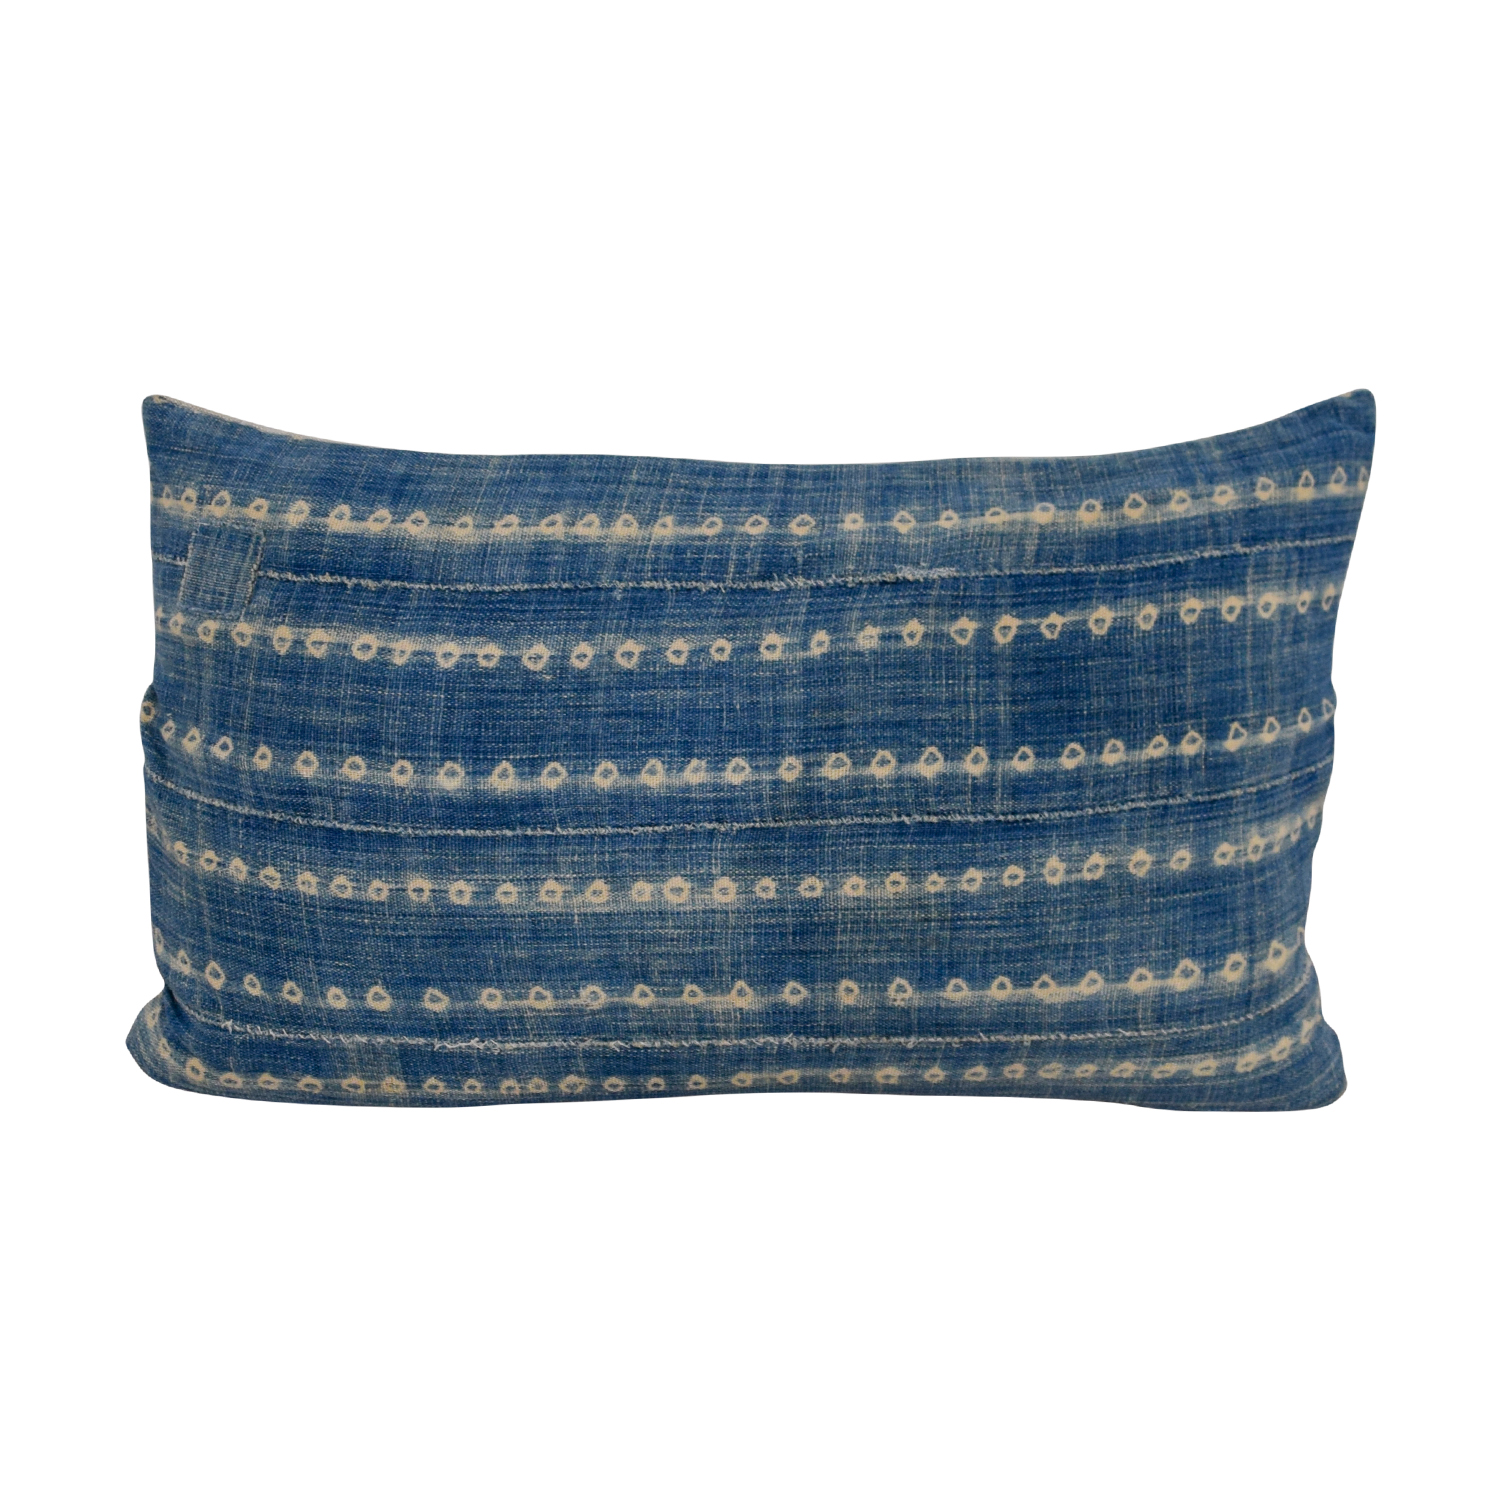 Etsy Etsy African Blue Mudcloth Toss Pillow nj